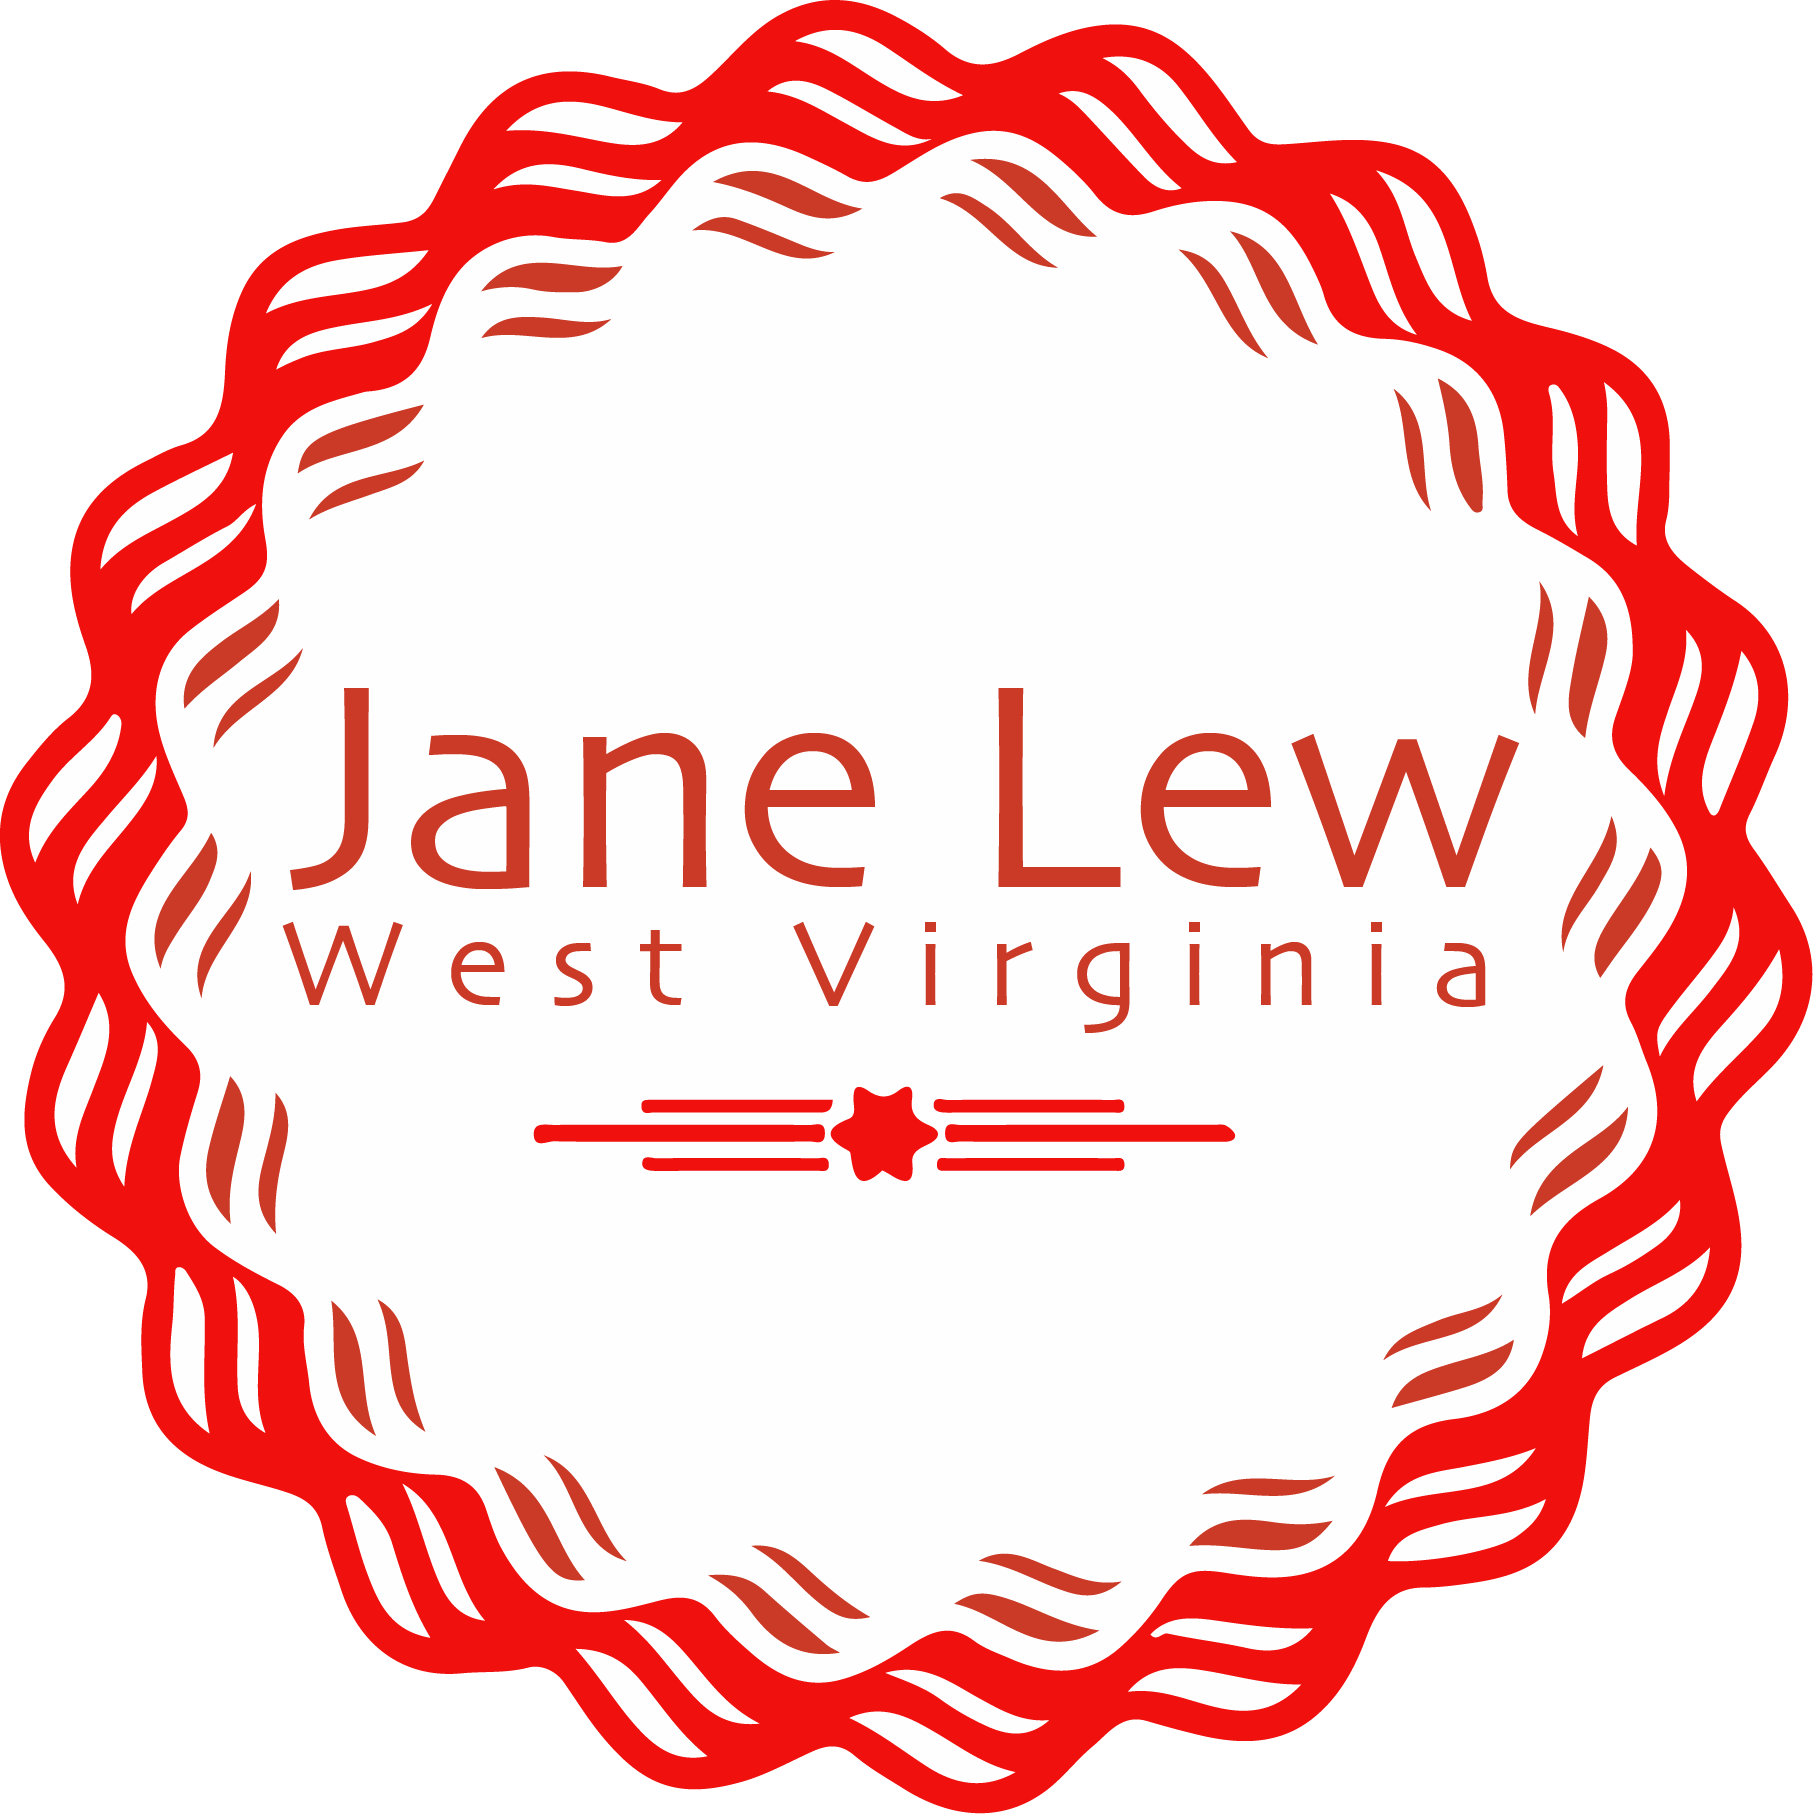 Town of Jane Lew